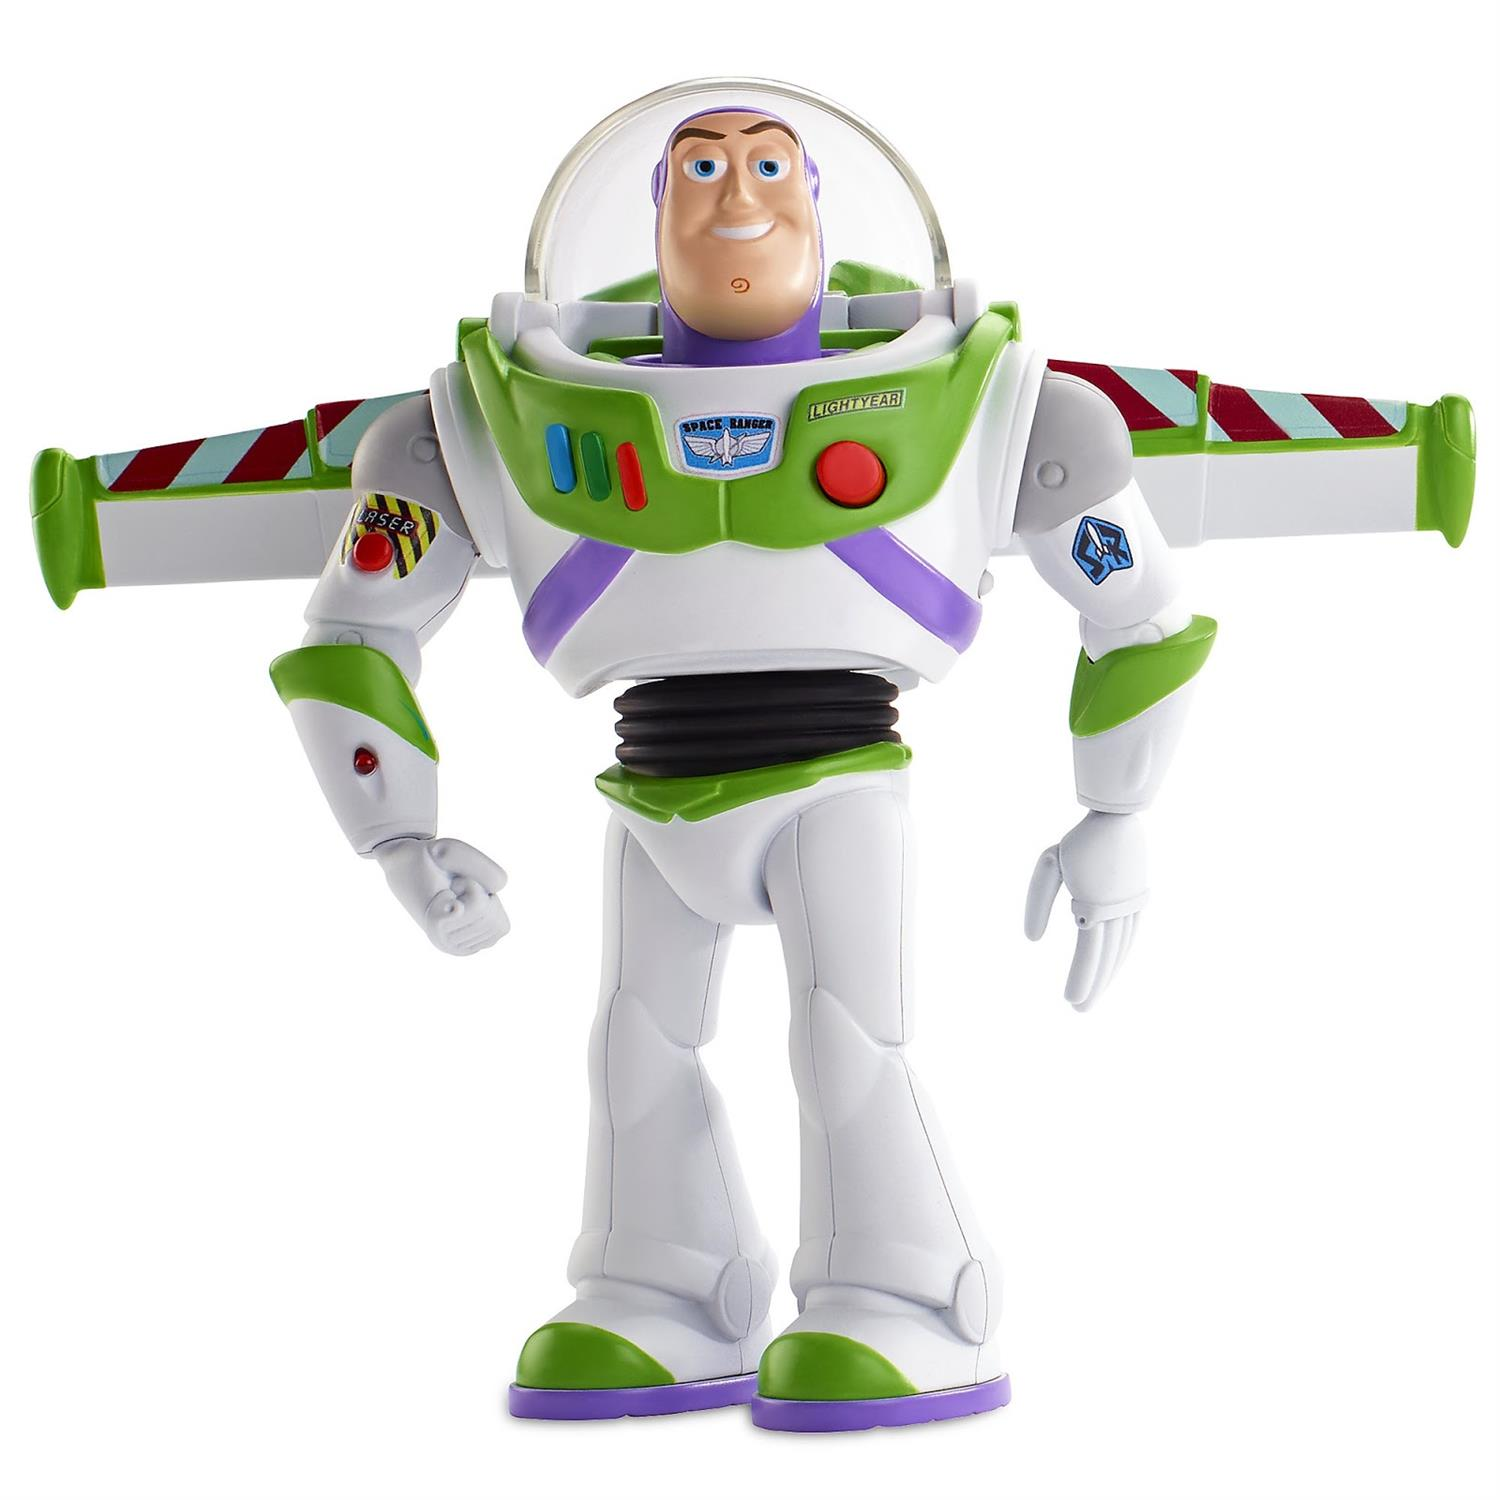 Quot Toy Story 4 Quot Play Sets And More Arrive On Shopdisney